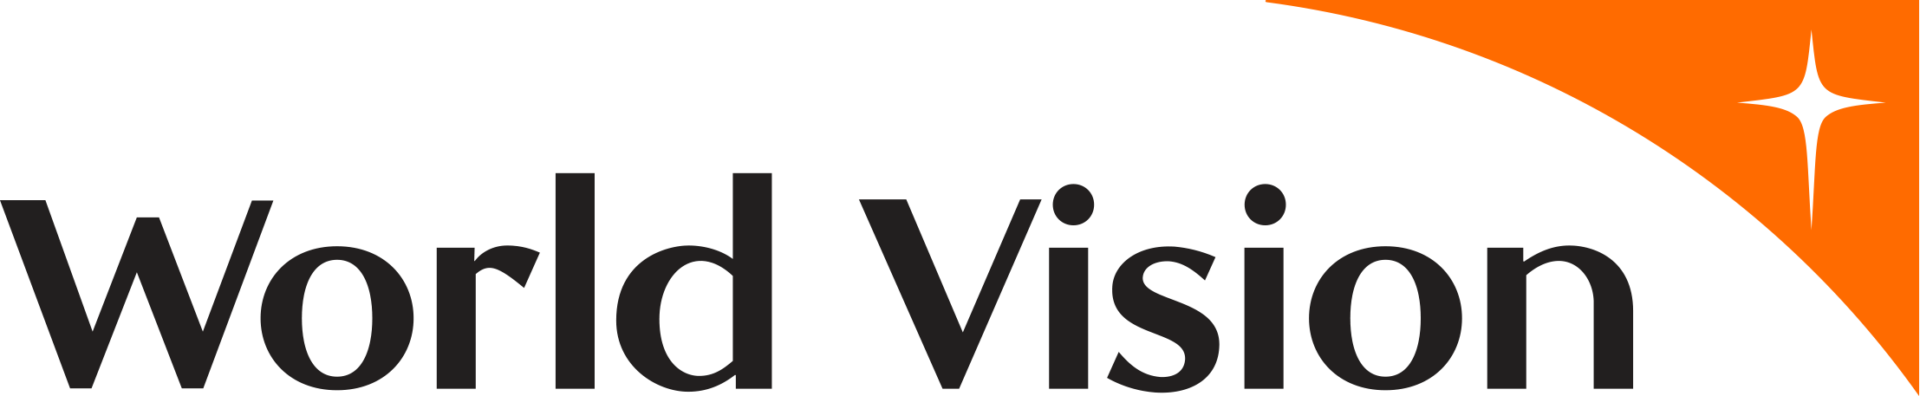 World Vision Migrates, Manages 600,000 Accounts with Auth0 Authentication